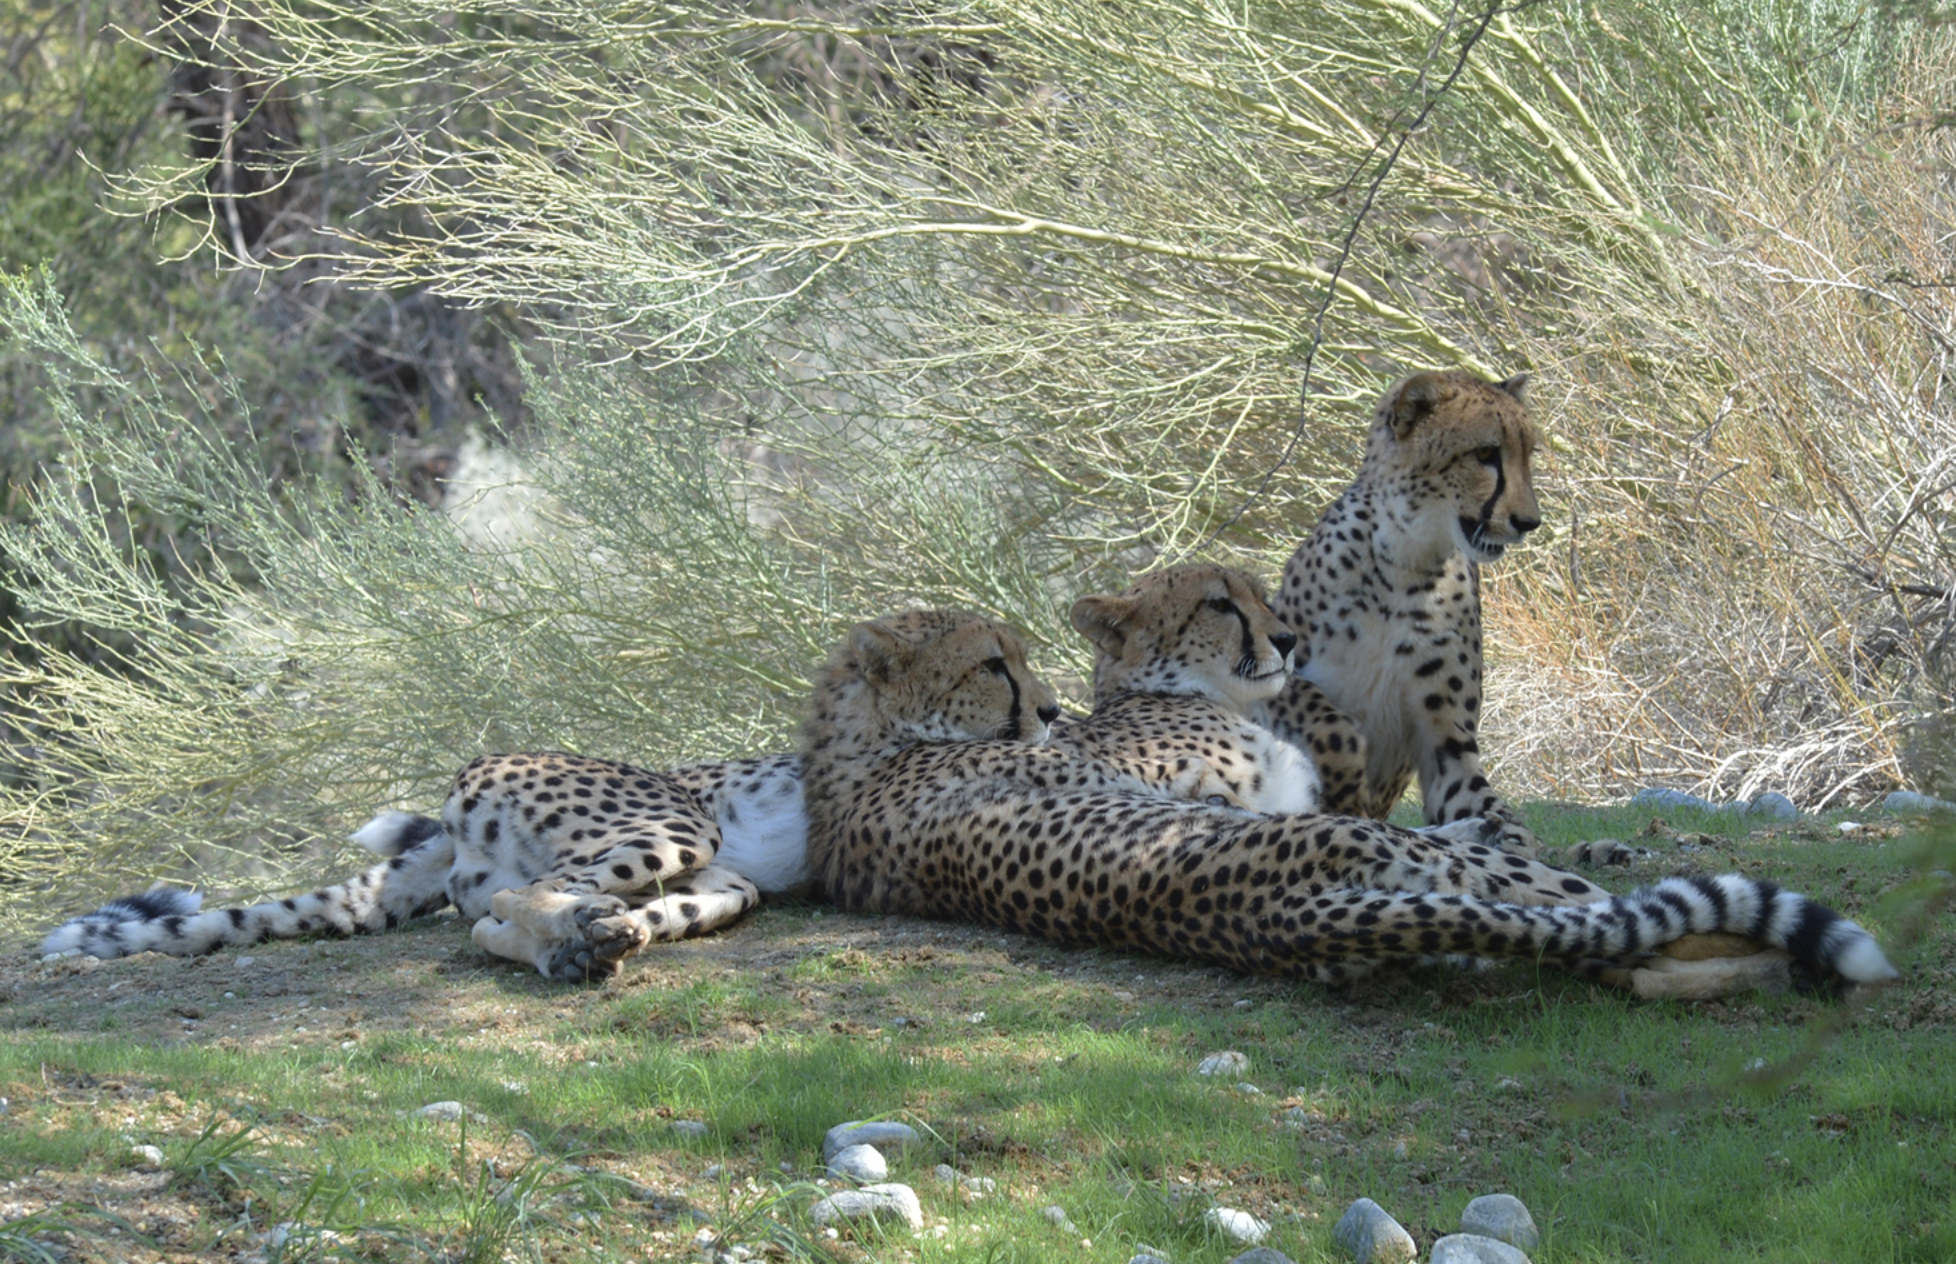 Image courtesy of The Living Desert Zoo and Gardens.